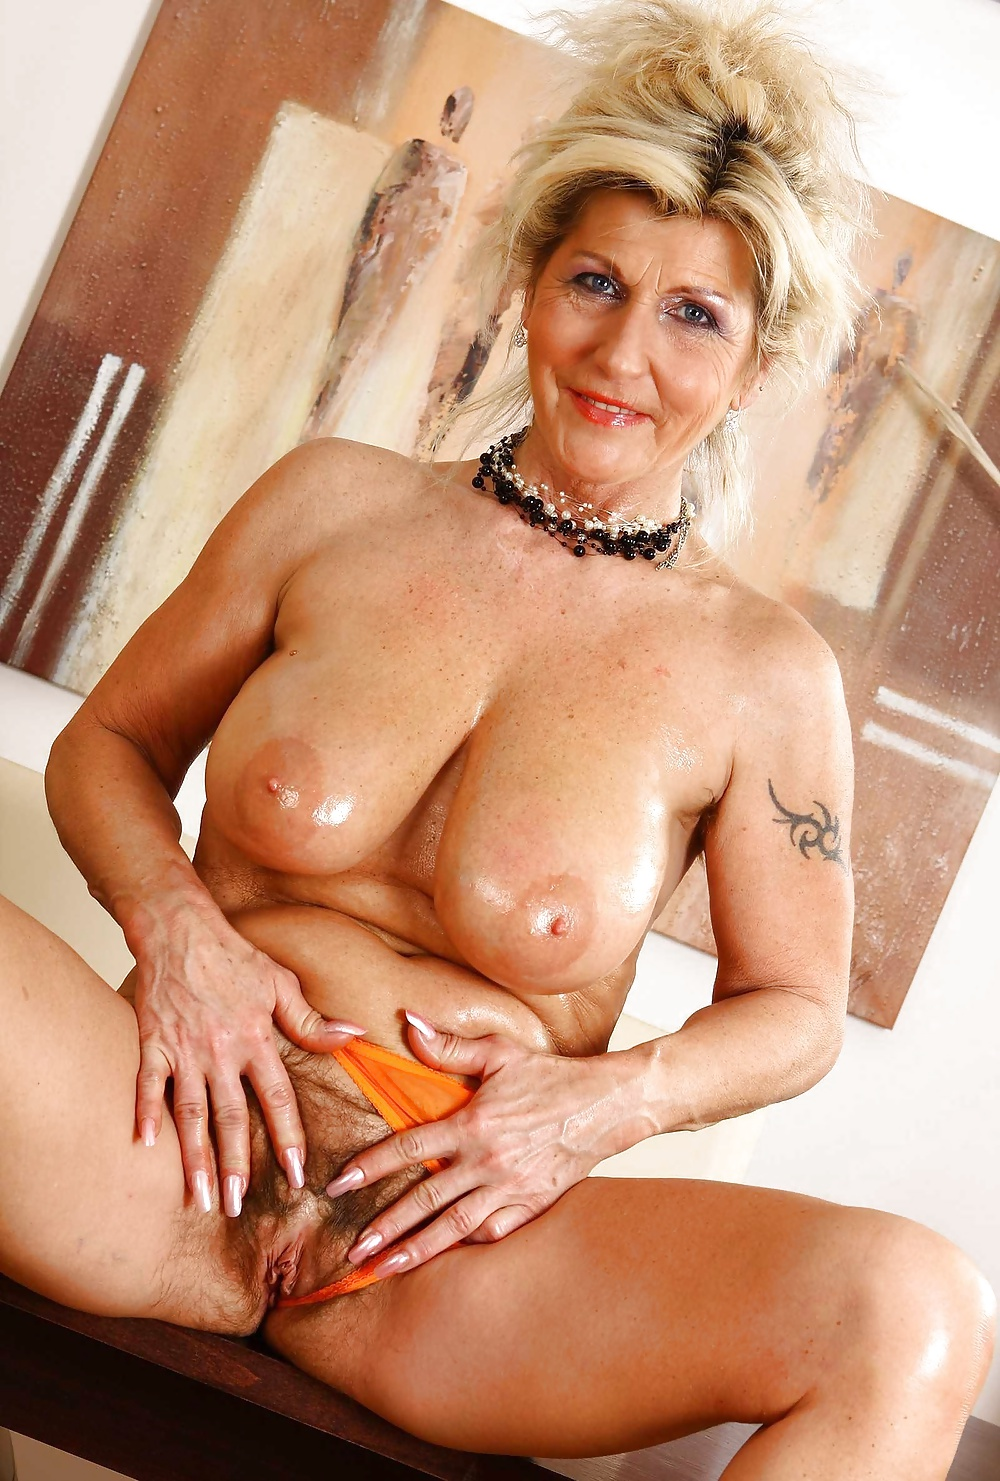 Hot sexy old woman photo pics